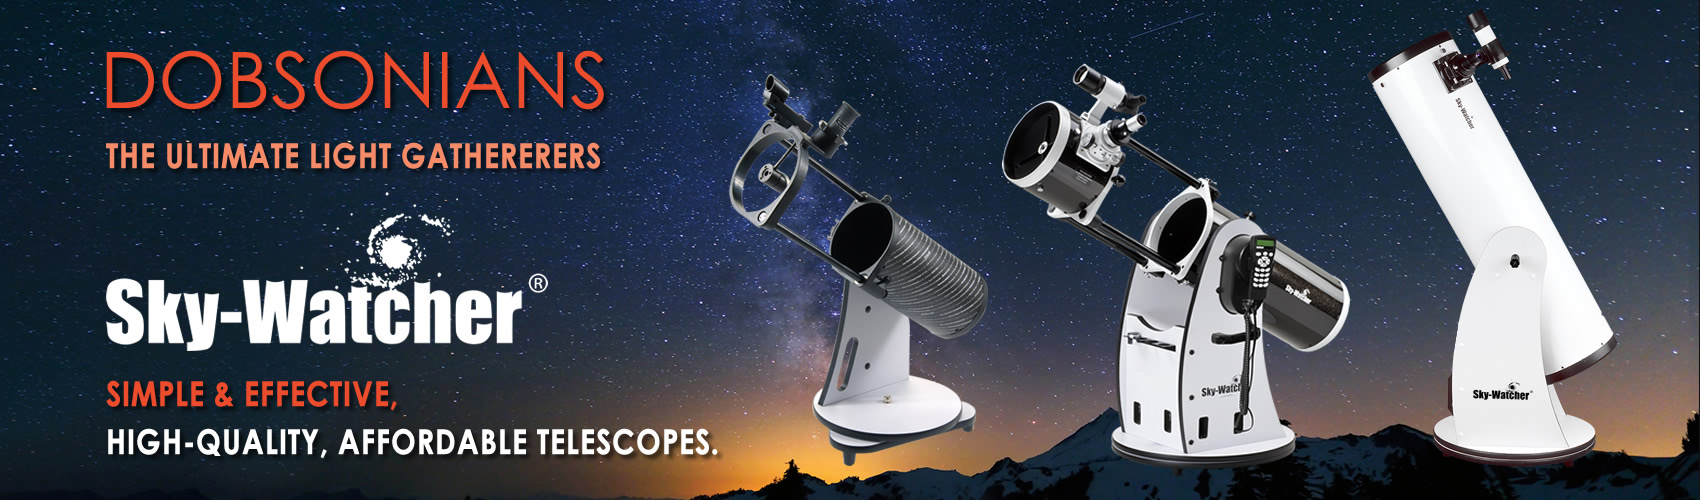 TELESCOPES, PHOTO, OPTICAL, TASCO SALES AUSTRALIA, TSA, call 02 9938 3244. Sky-Watcher, Meade Instruments, Fotopro, Tasco, Weatherby, Magpul, OTIS, GSM Outdoors, BSA, Mossberg, Marocchi, Warne, Howard Leight, H-S Precision, Muck Boots, Night Prowler, Voodoo Tactical, ATV TEK, Camillus.